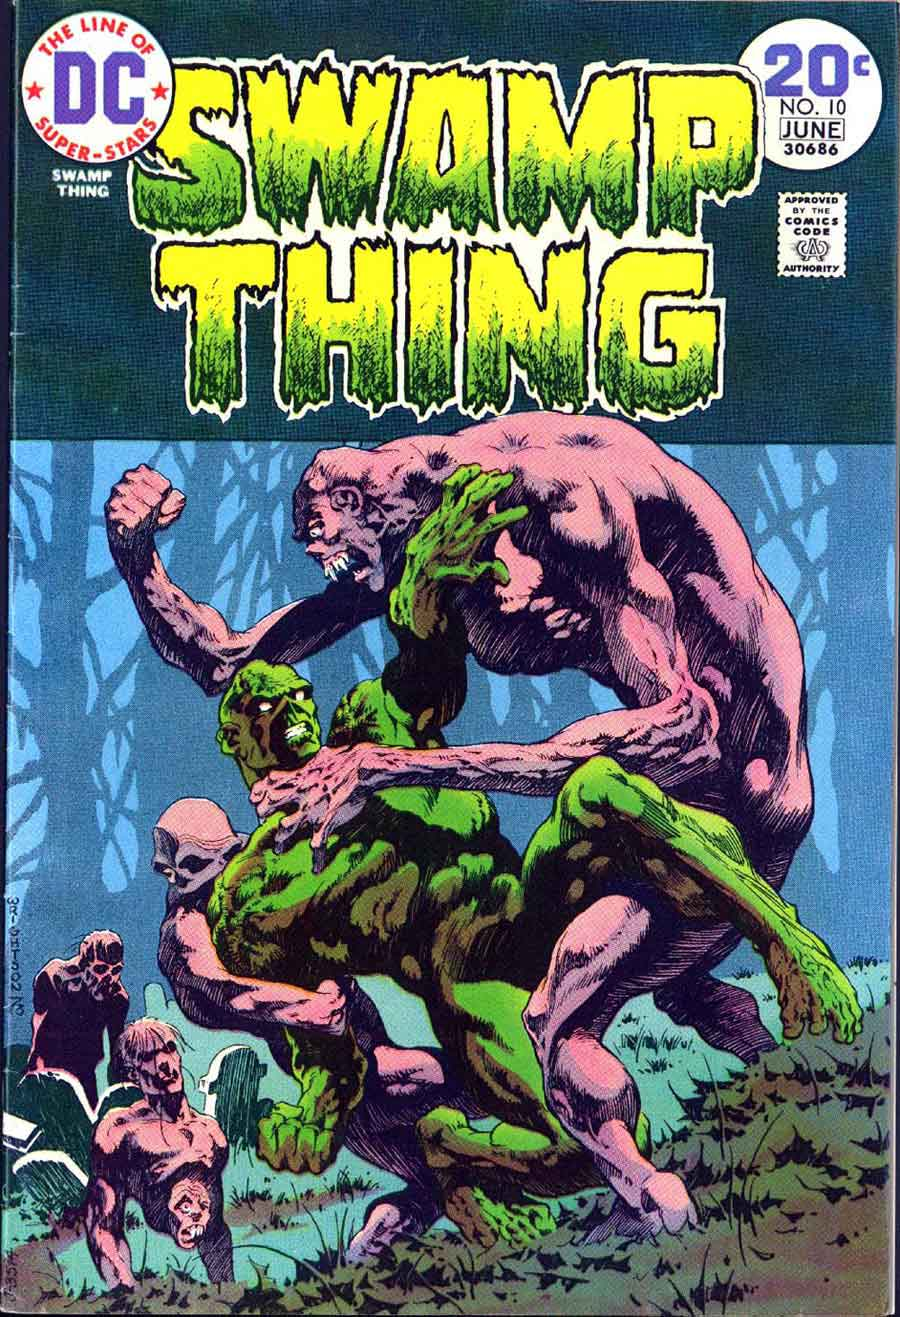 Swamp Thing #10 bronze age 1970s dc comic book cover art by Bernie Wrightson